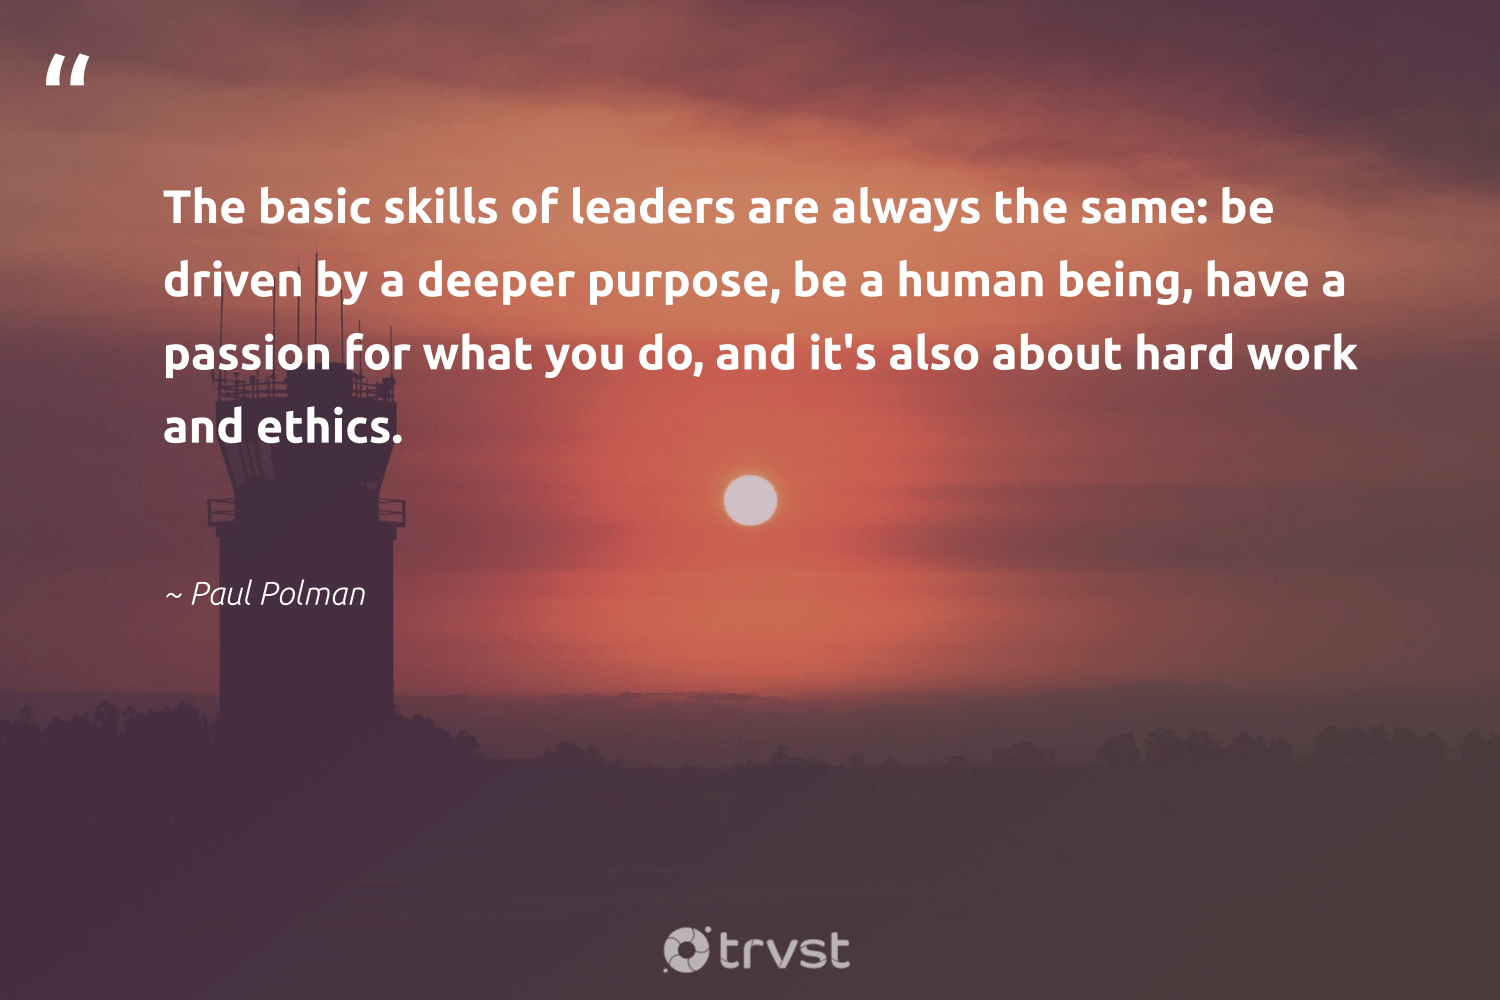 """The basic skills of leaders are always the same: be driven by a deeper purpose, be a human being, have a passion for what you do, and it's also about hard work and ethics.""  - Paul Polman #trvst #quotes #passion #purpose #purposedriven #futureofwork #mindset #takeaction #findpurpose #nevergiveup #togetherwecan #bethechange"